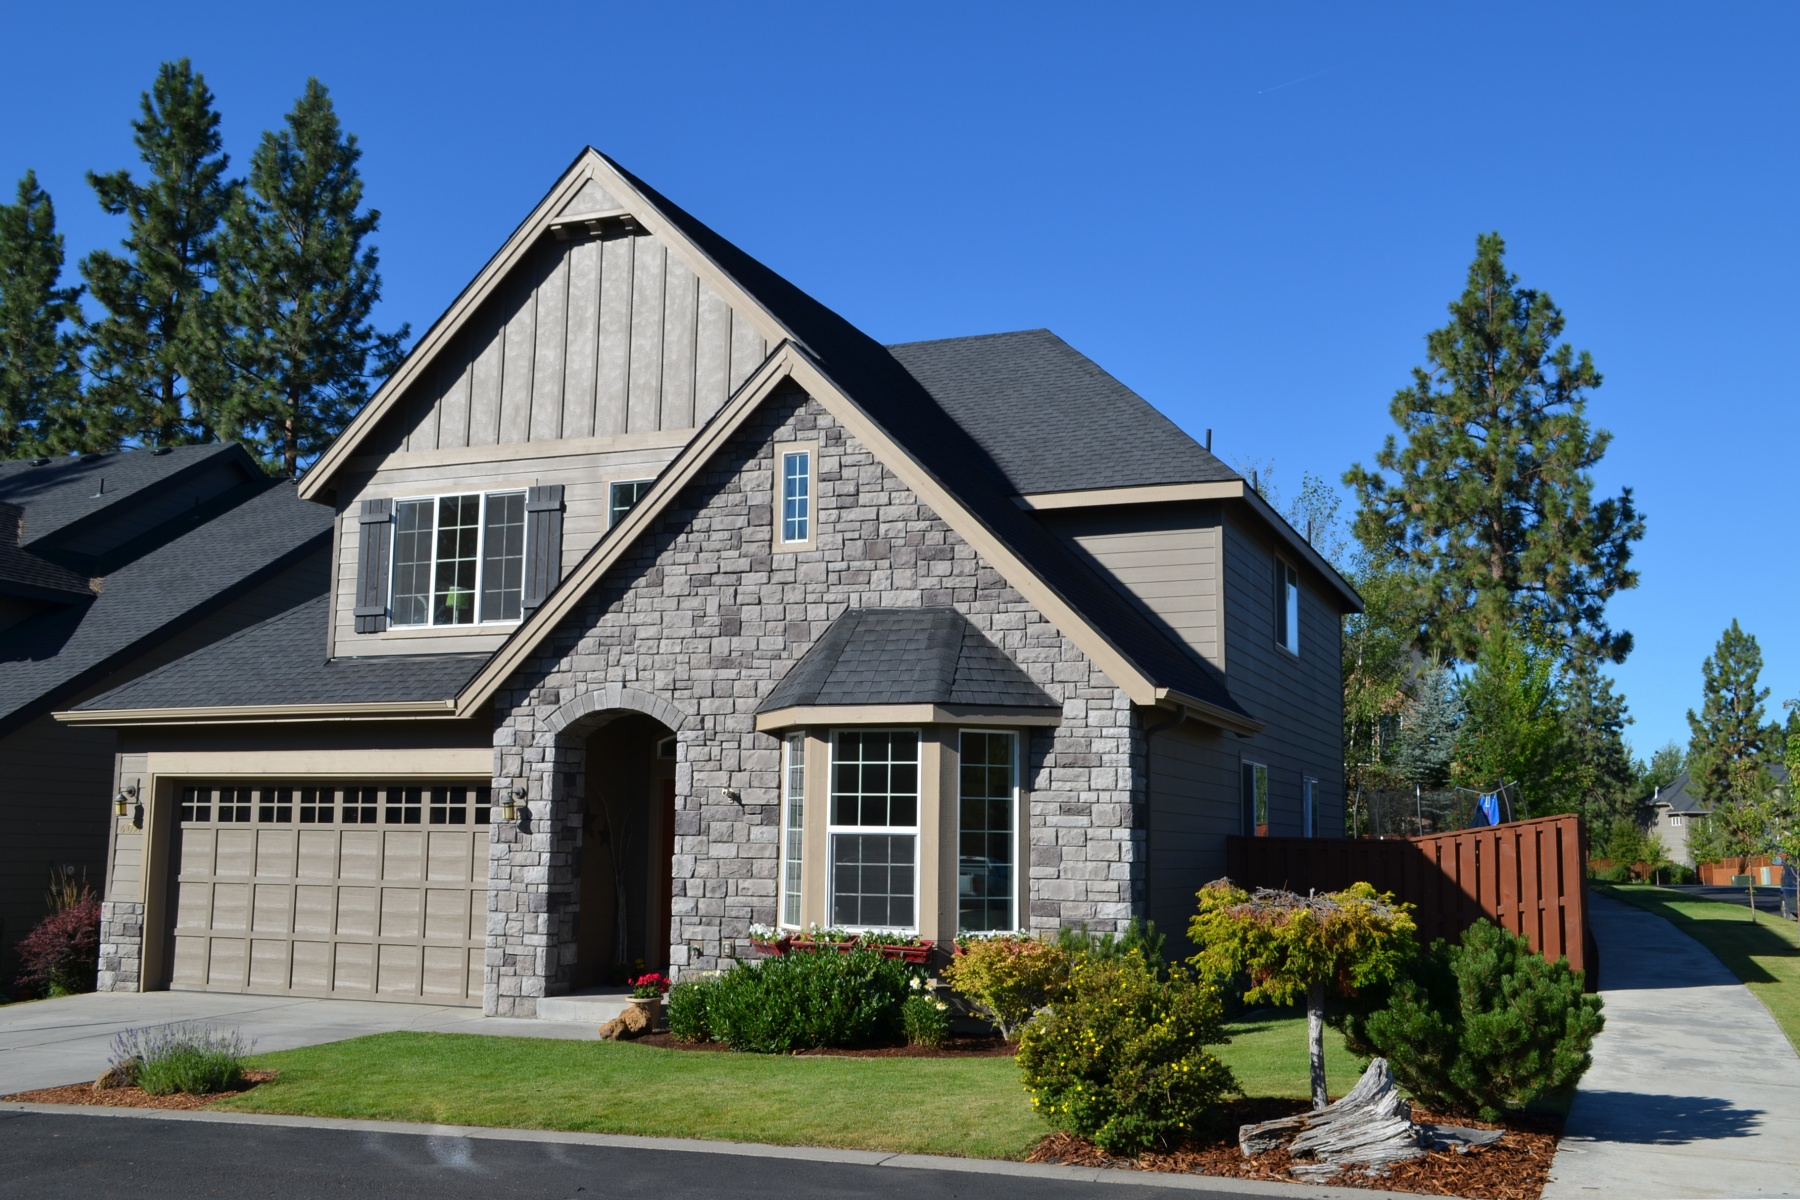 Moradia para Venda às Highly Desired River Canyon Estates 61058 Snowbrush Dr Bend, Oregon, 97702 Estados Unidos